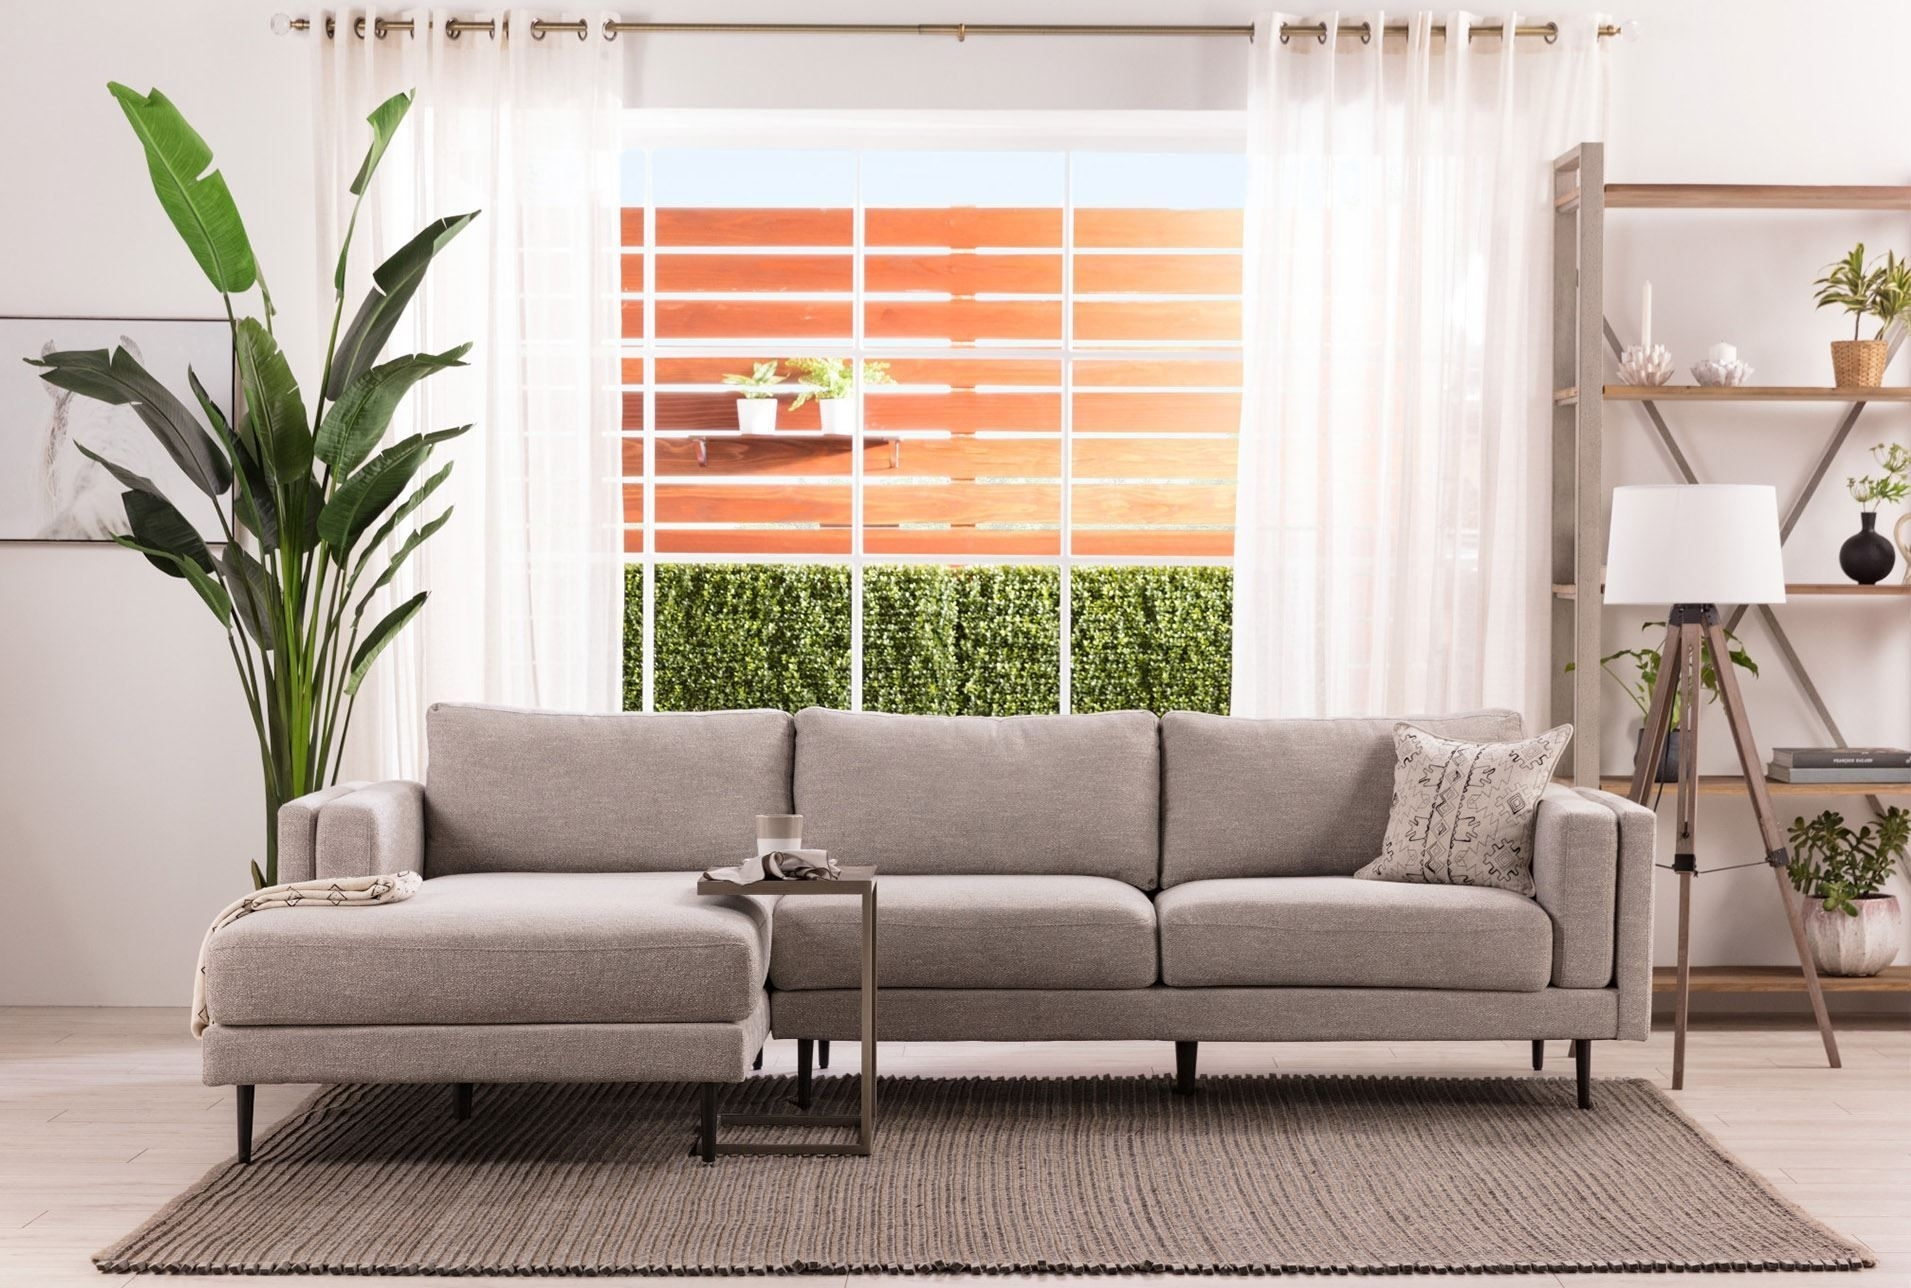 Aquarius Light Grey 2 Piece Sectional W/laf Chaise | Home within Aquarius Dark Grey 2 Piece Sectionals With Raf Chaise (Image 8 of 30)